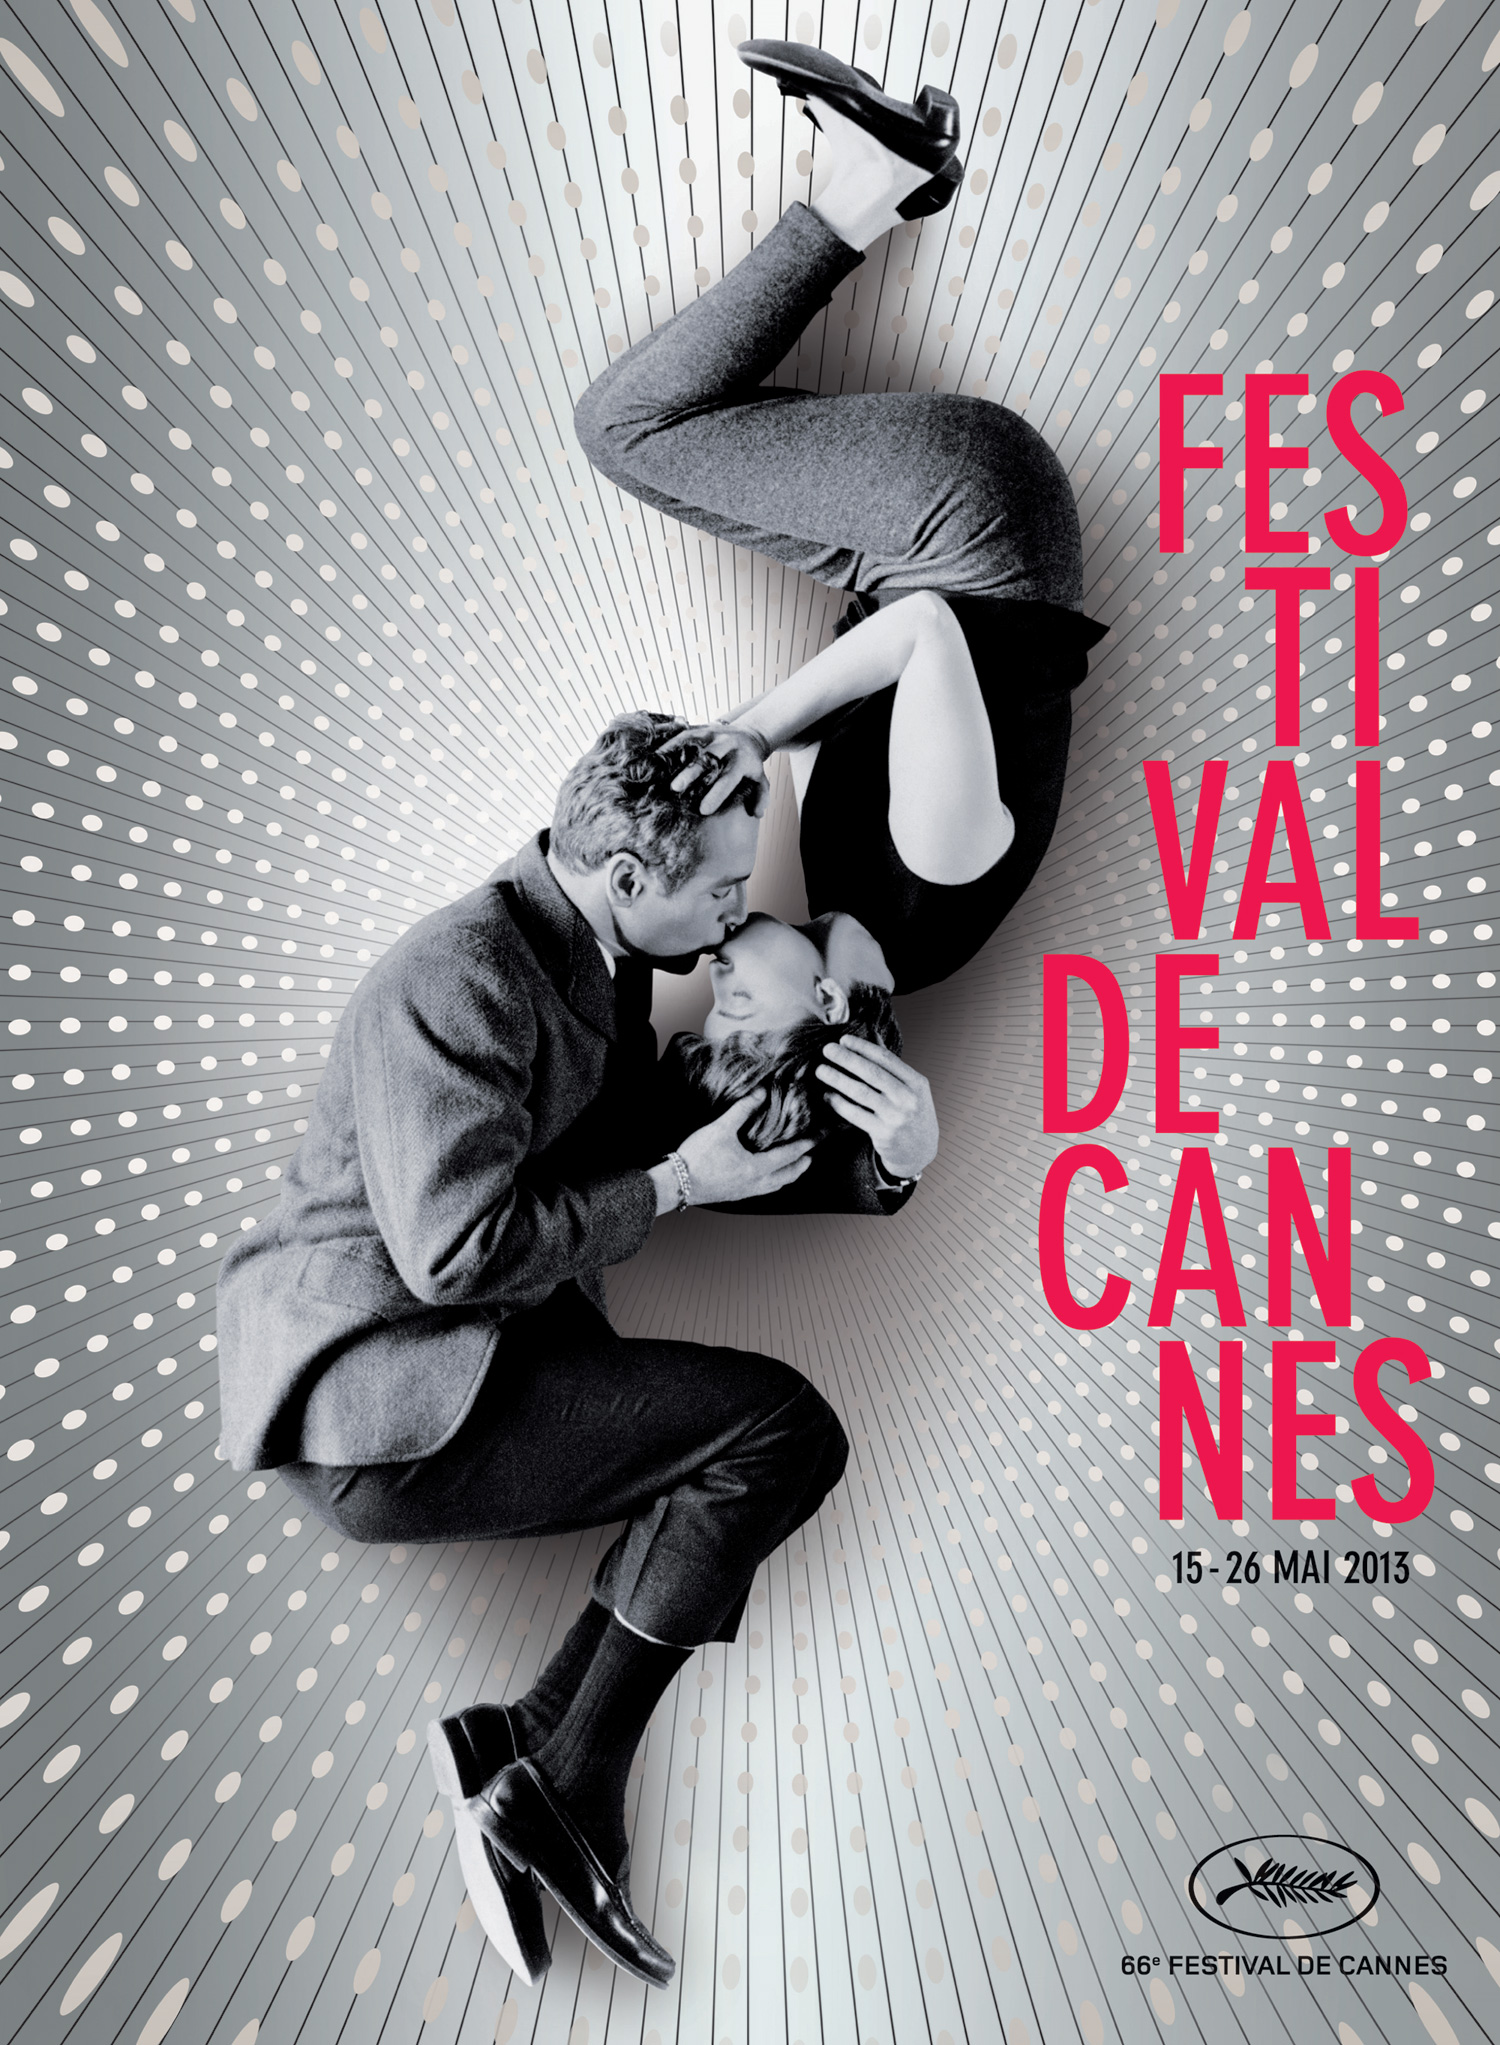 https://i0.wp.com/cinemateaser.com/wordpress/wp-content/uploads/2013/03/Cannes-2013-Poster-HR.jpg